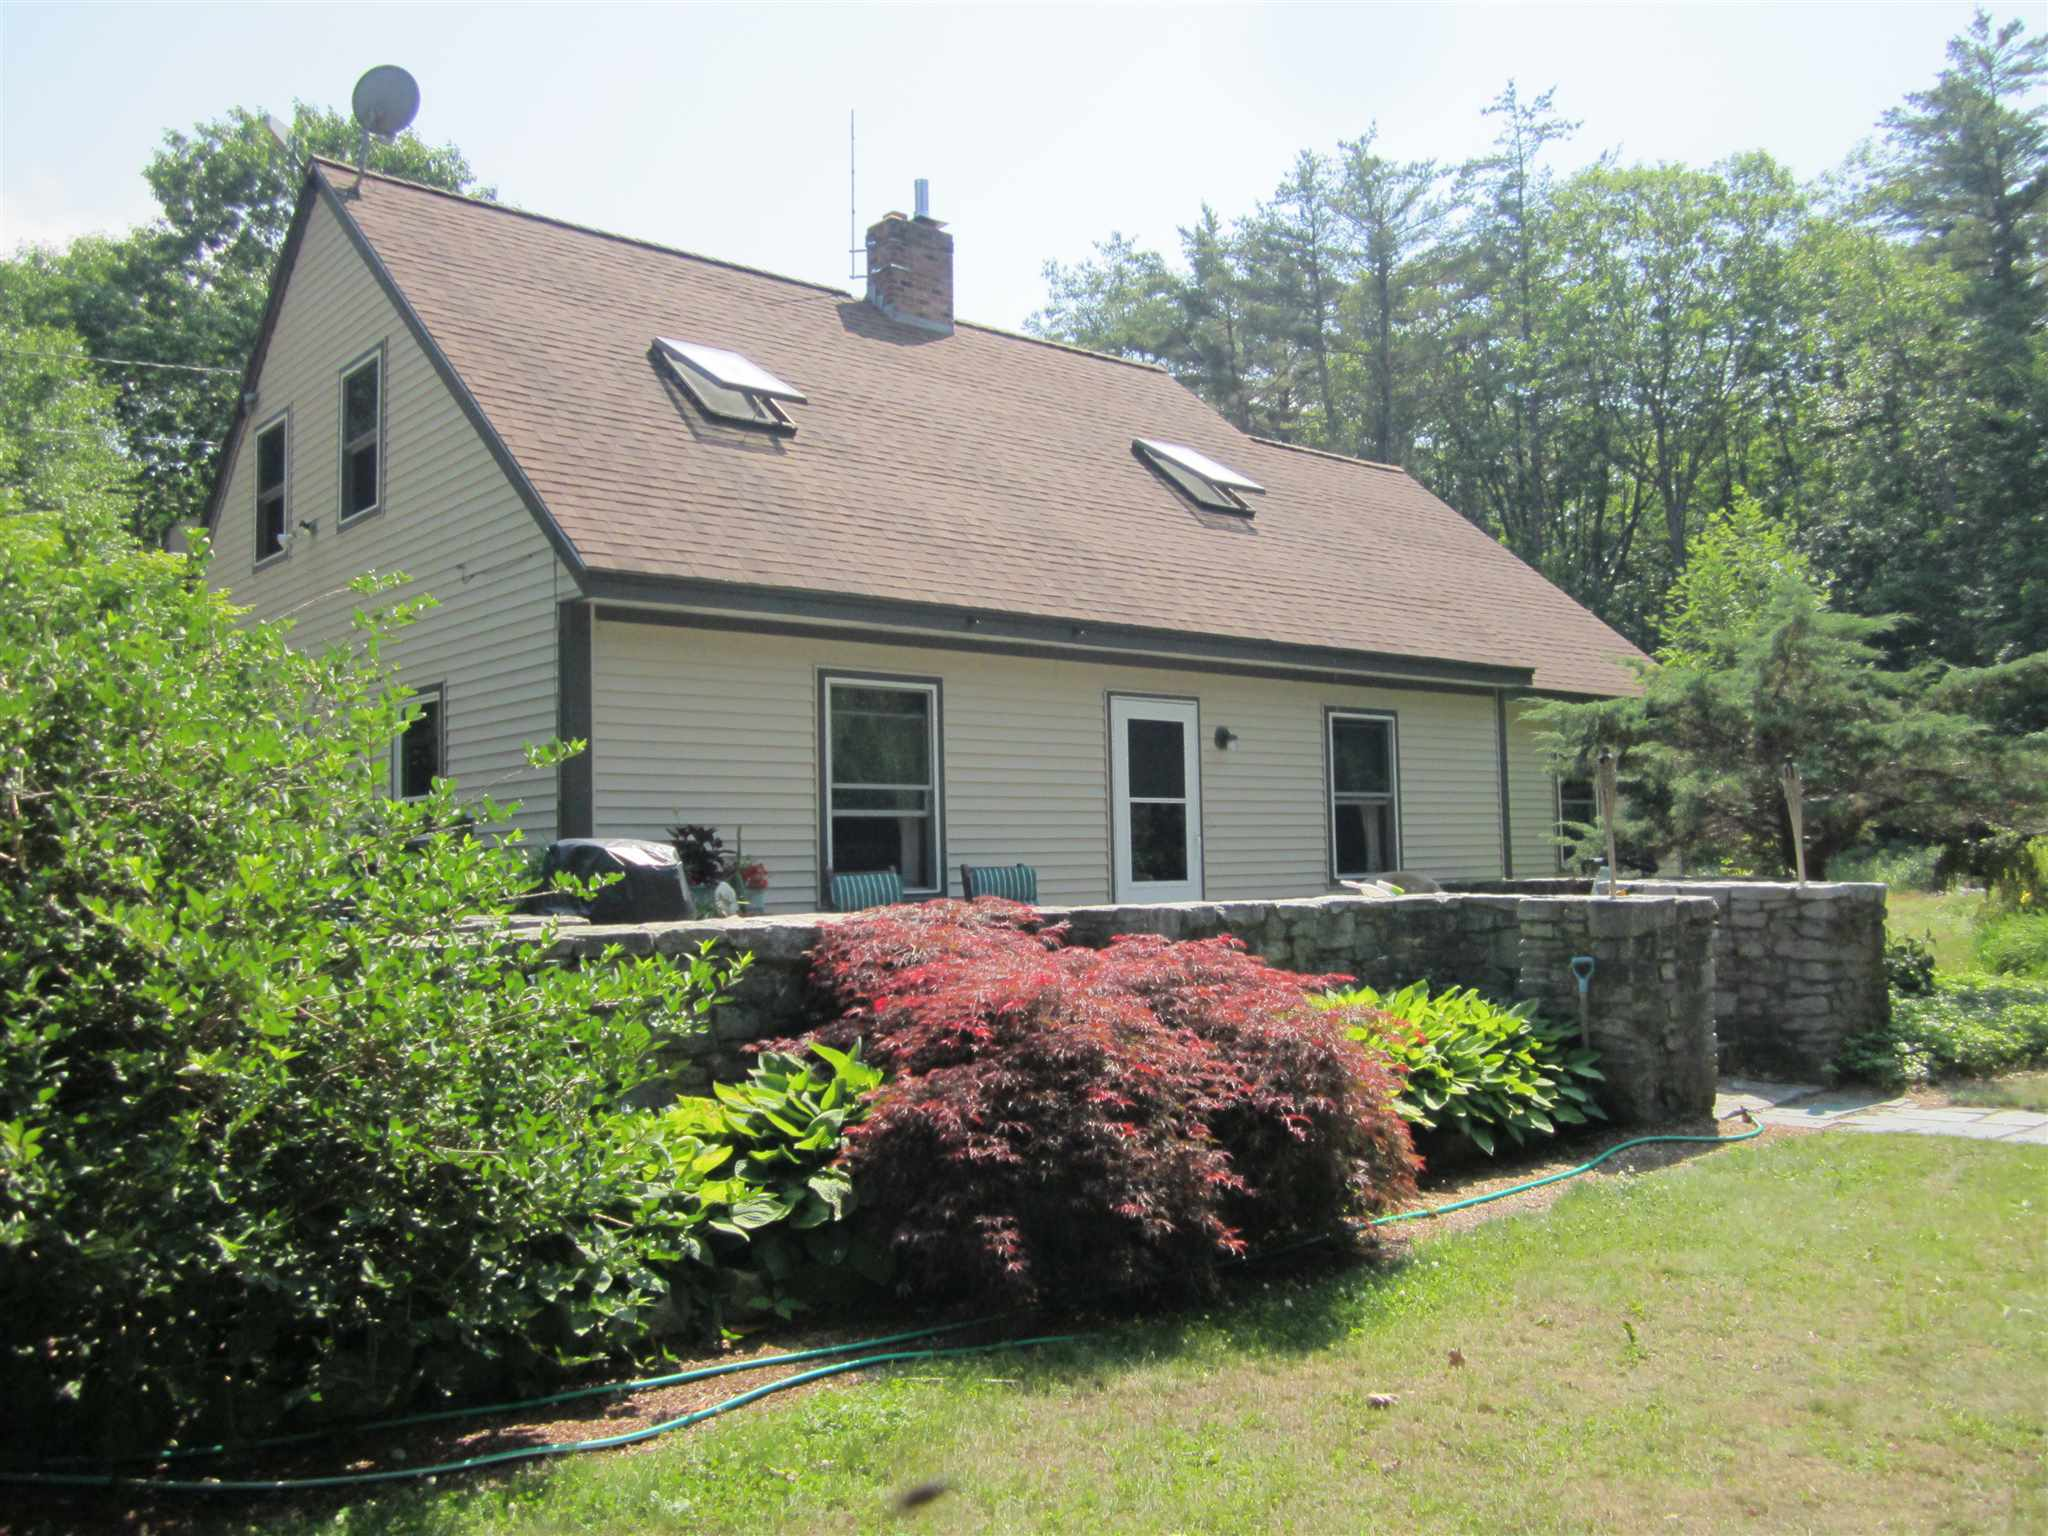 MLS 4814993: 442 Royalston Road, Fitzwilliam NH